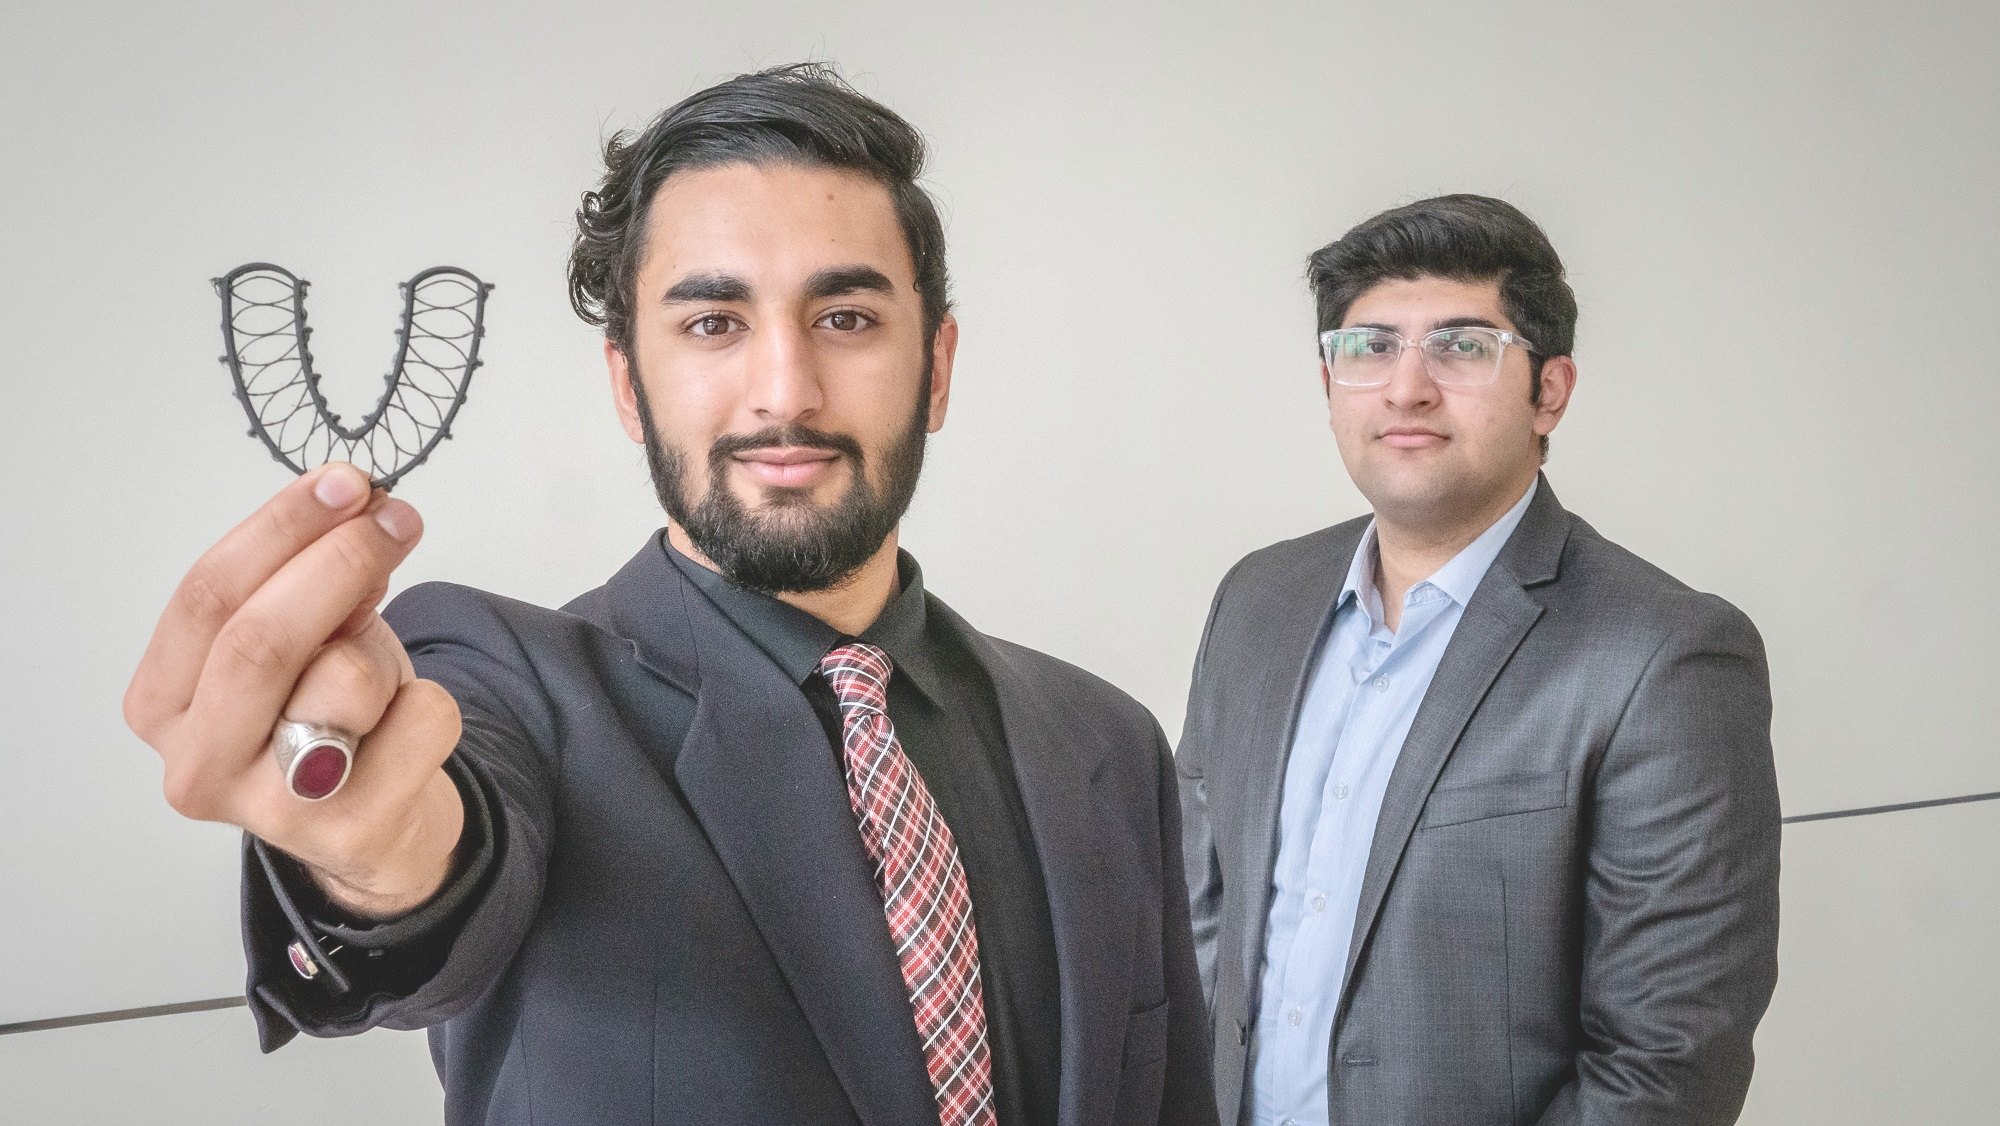 Zaki Tahir and his Dr. Floss partner, Hassan Kashif, took home a firstplace win in the annual Startup Montclair Pitch Competition at Montclair State University's Feliciano Center for Entrepreneurship & Innovation.